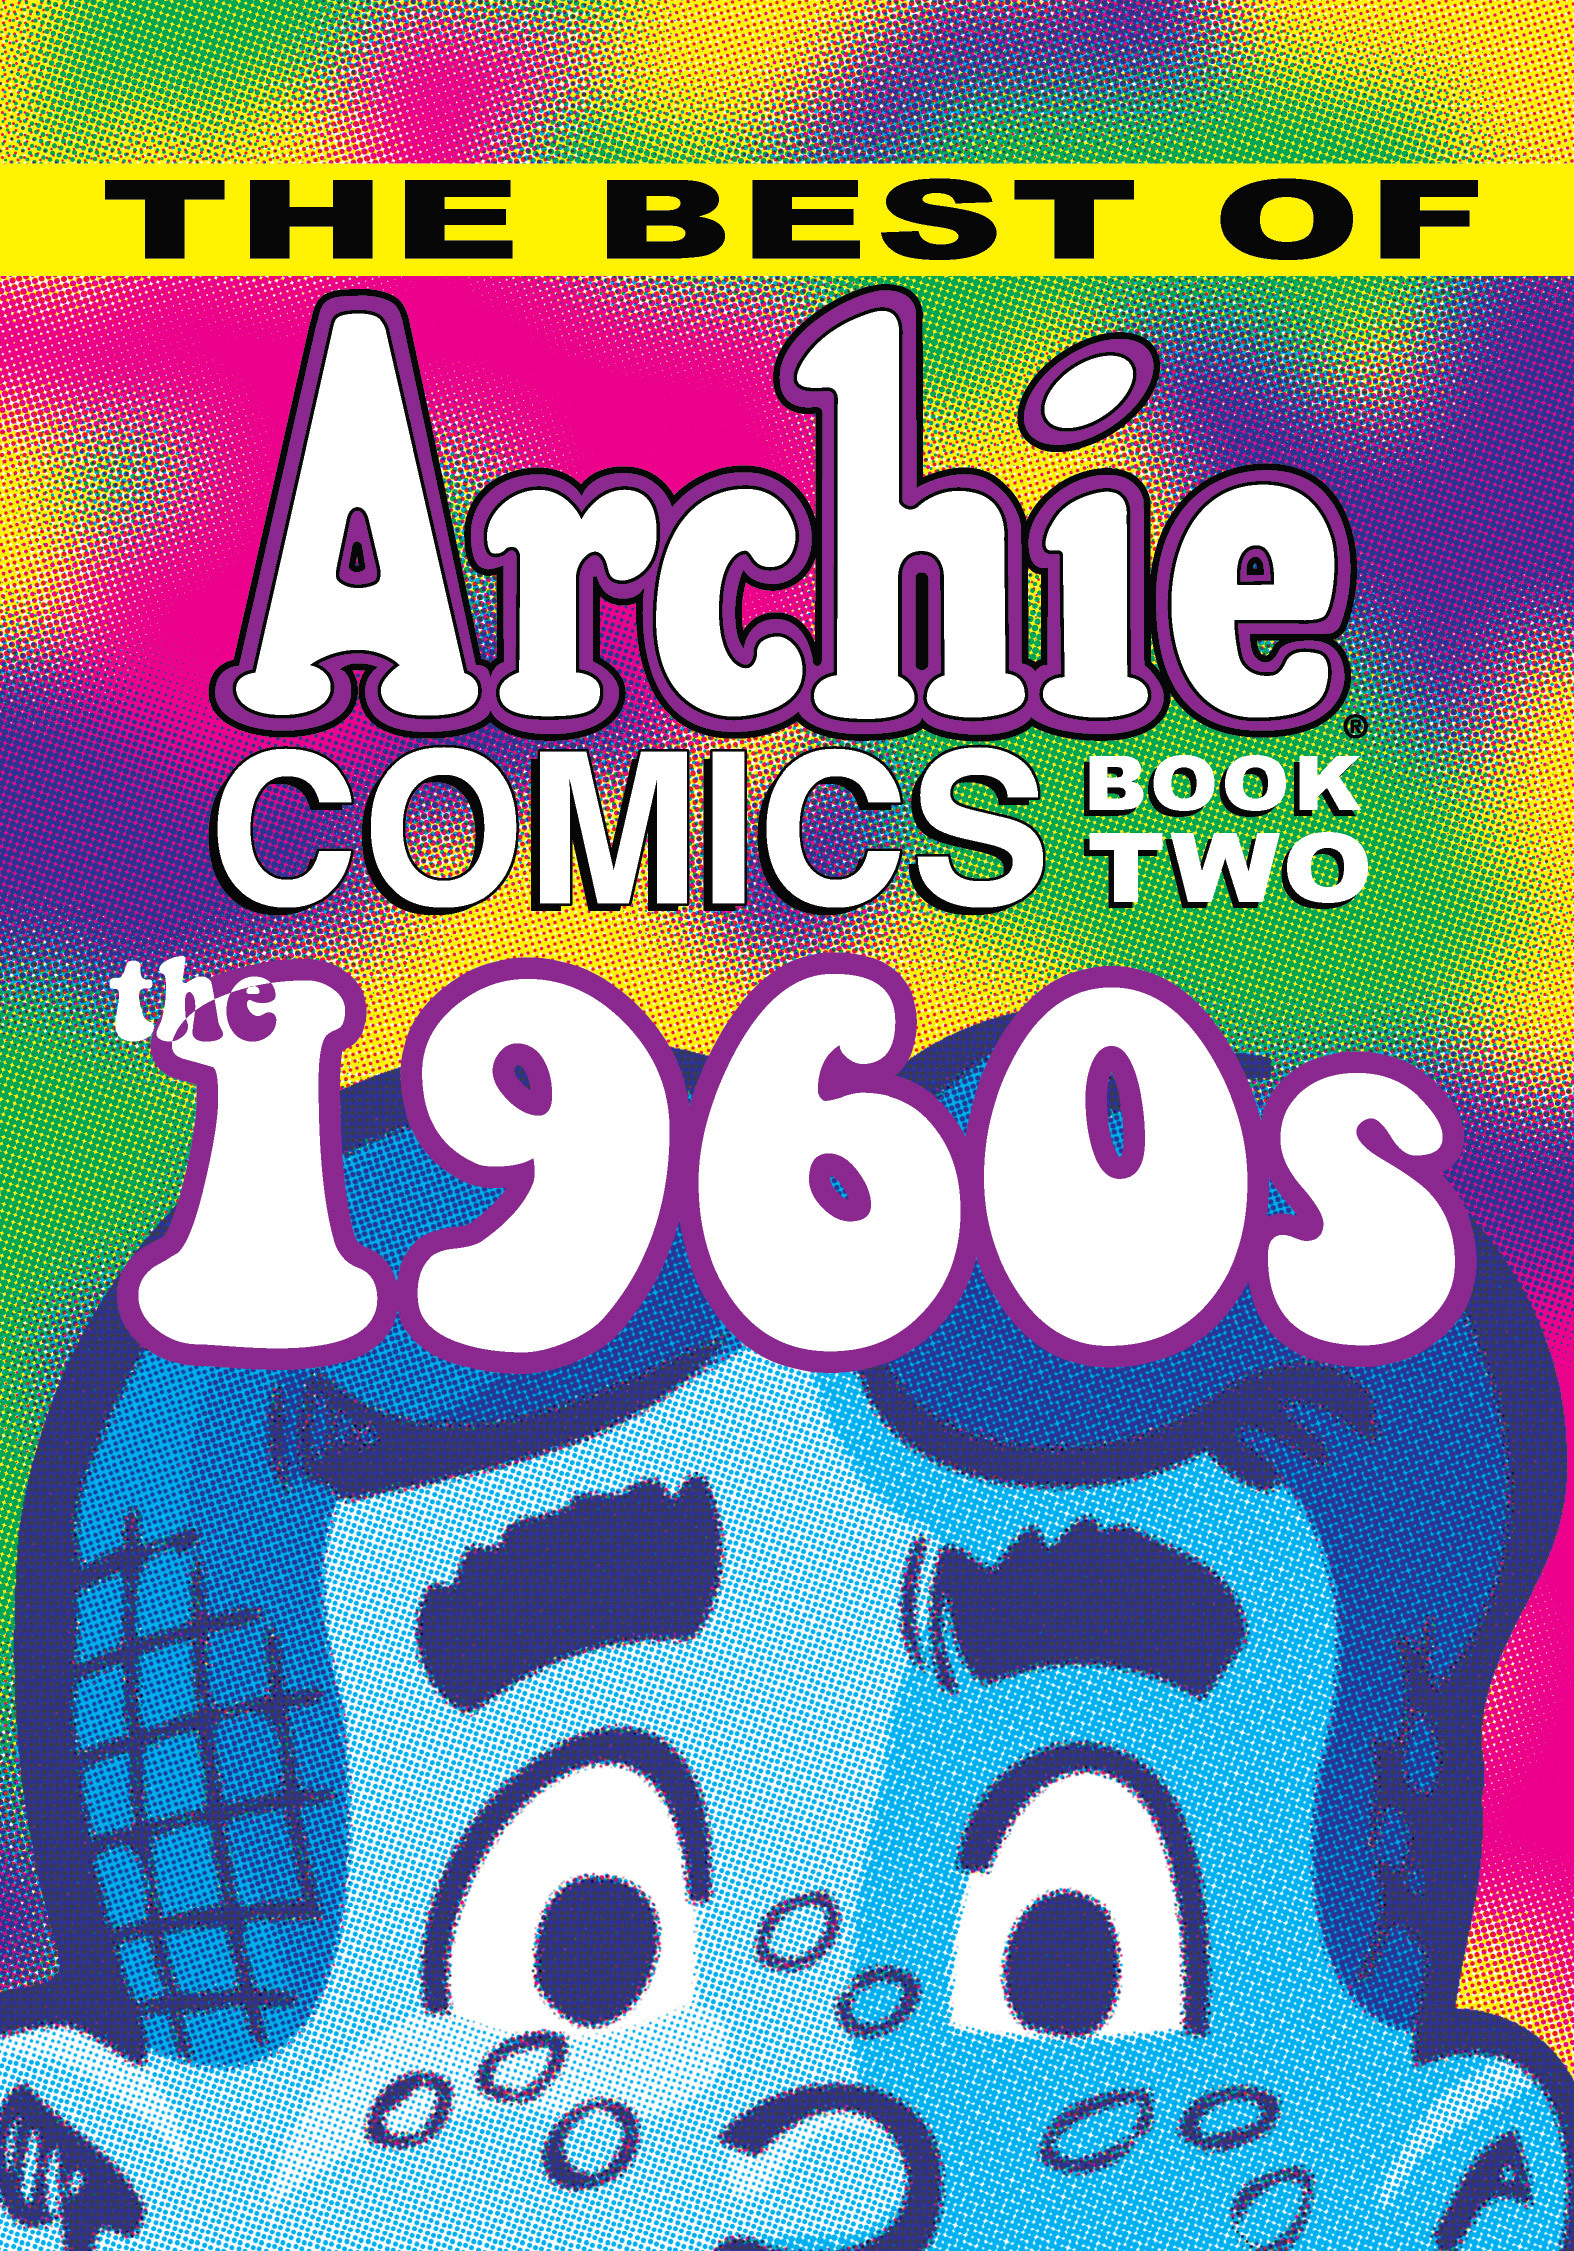 Read online The Best of Archie Comics comic -  Issue # TPB 2 (Part 1) - 91